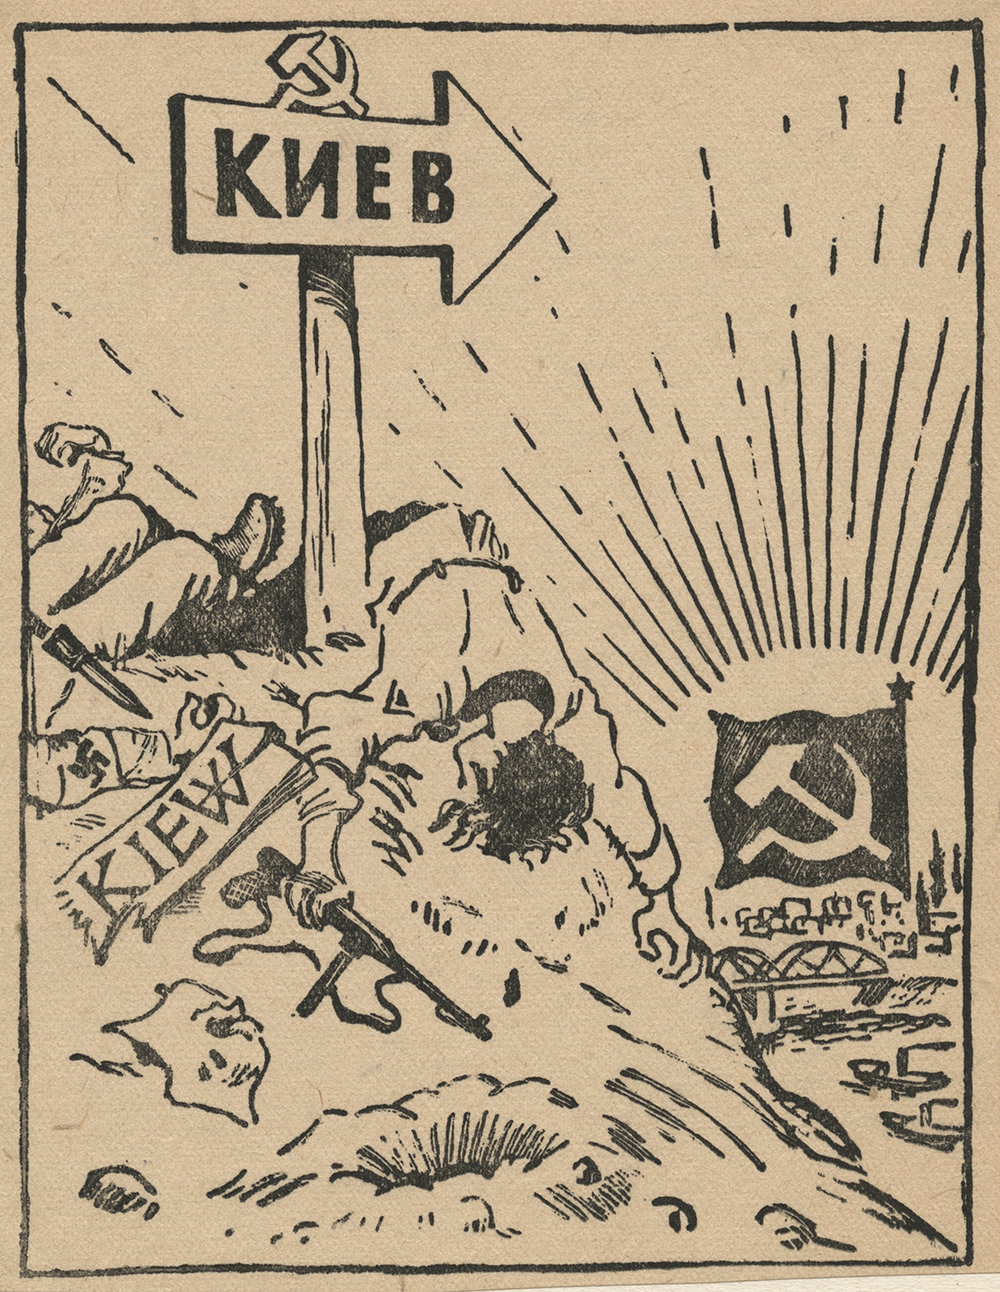 Eugene Kogan illustration. Warning German WWII troops that Kiev is under Soviet control. ca. 1941-1945